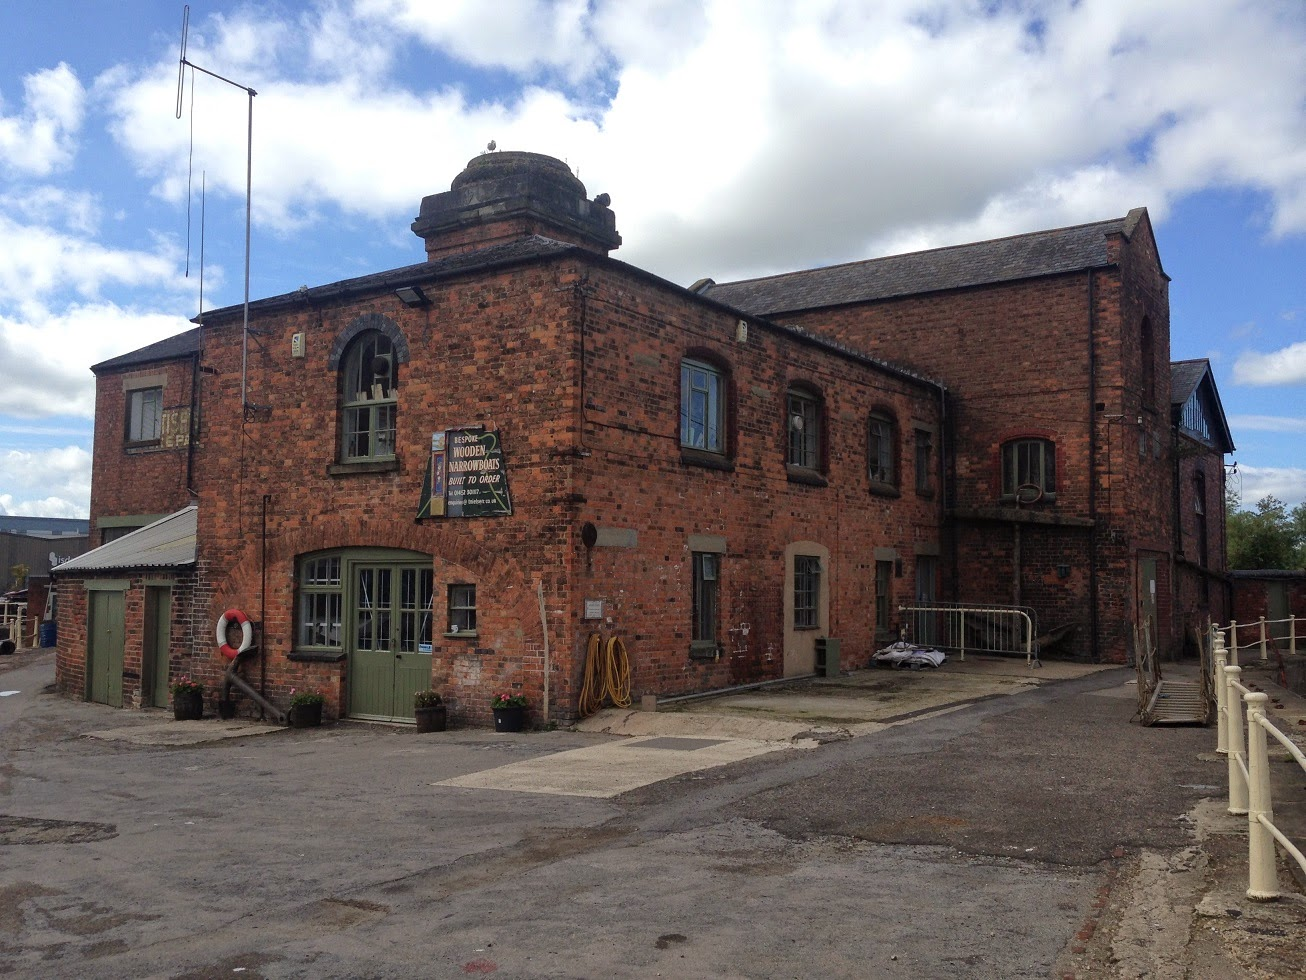 Old British Waterways building, Gloucester Docks